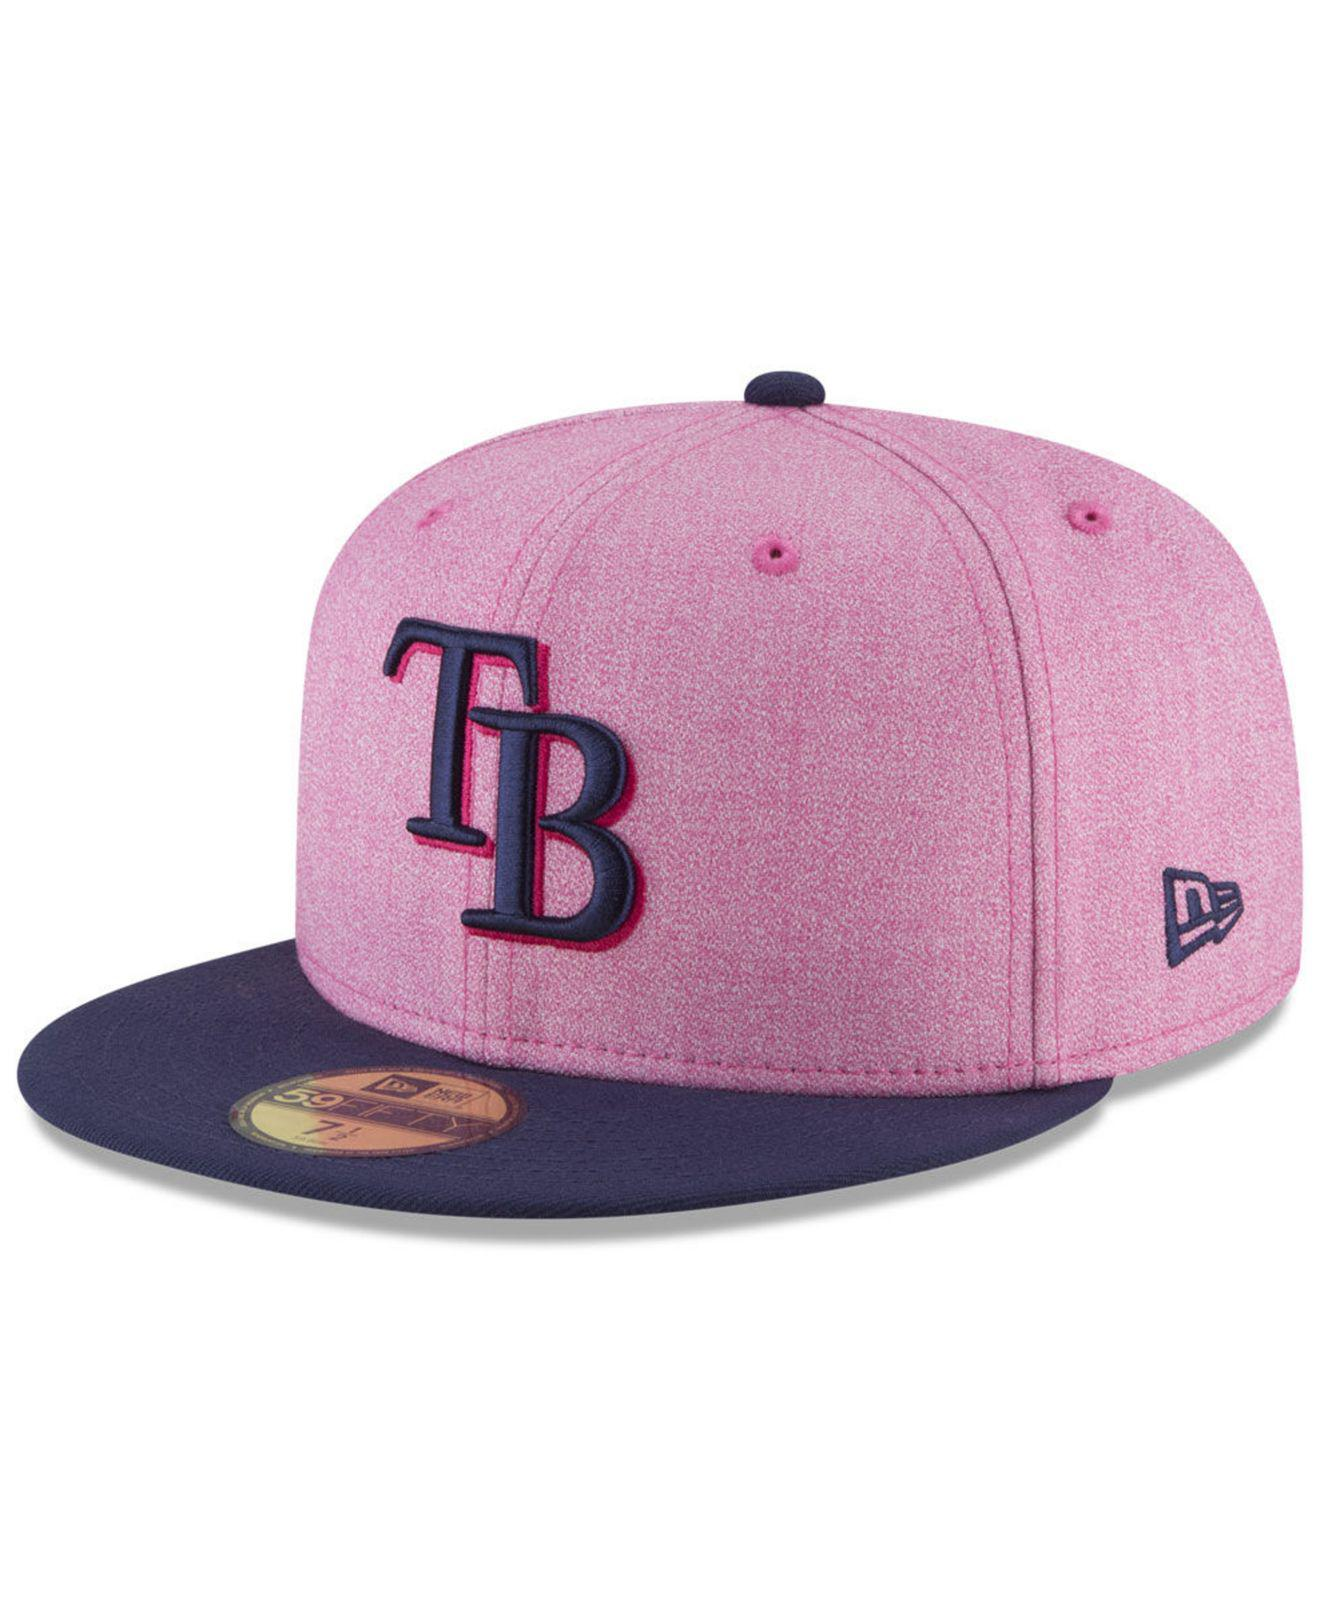 check out 403e9 8c075 ... where can i buy ktz. womens pink tampa bay rays mothers day 59fifty  fitted cap